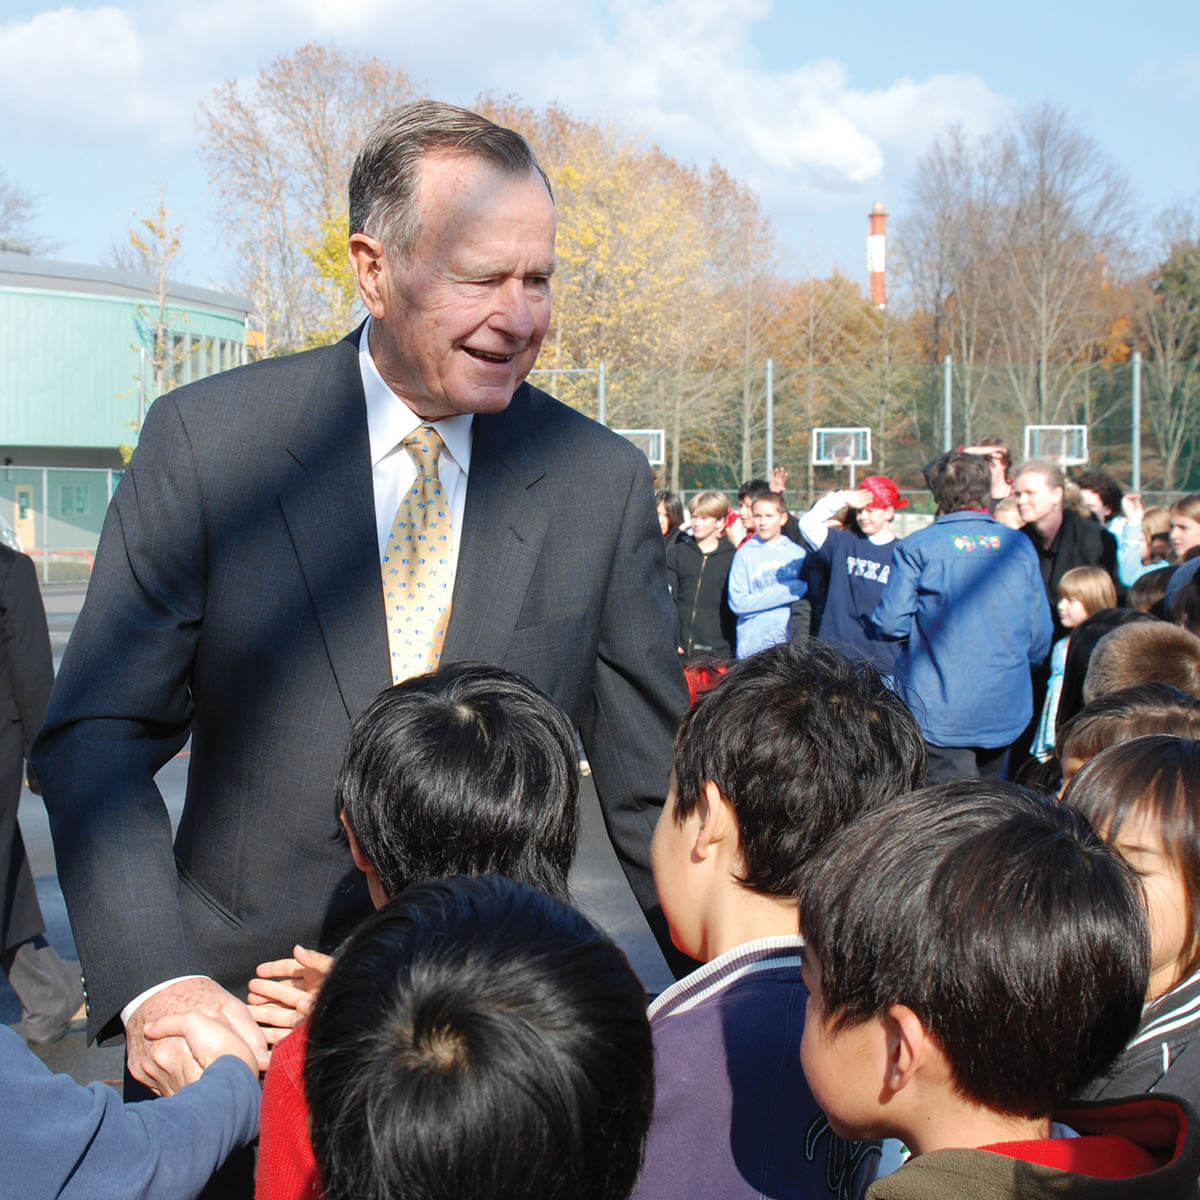 President George H Bush Shakes Elementary Schoolers' Hands at the ASIJ Campus